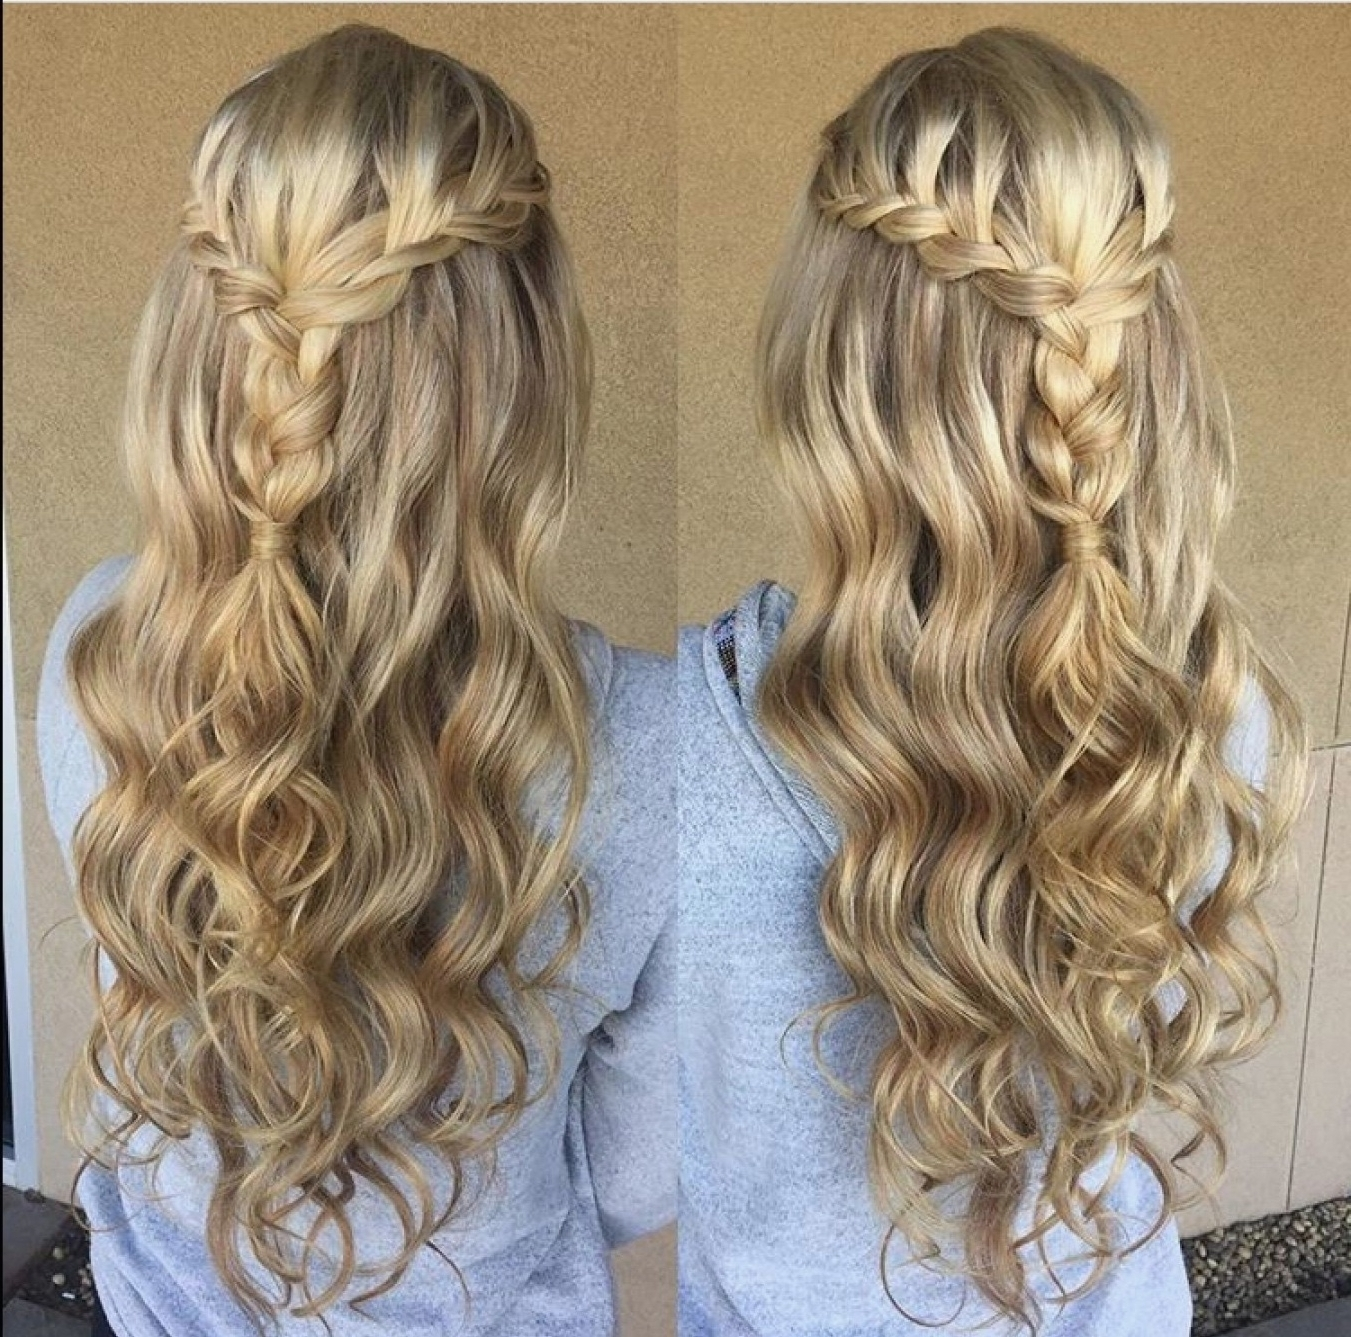 Latest Up Braided Hairstyles With Braid Hairstyles : Cool Half Up Half Down Braided Prom Hairstyles In (View 6 of 15)